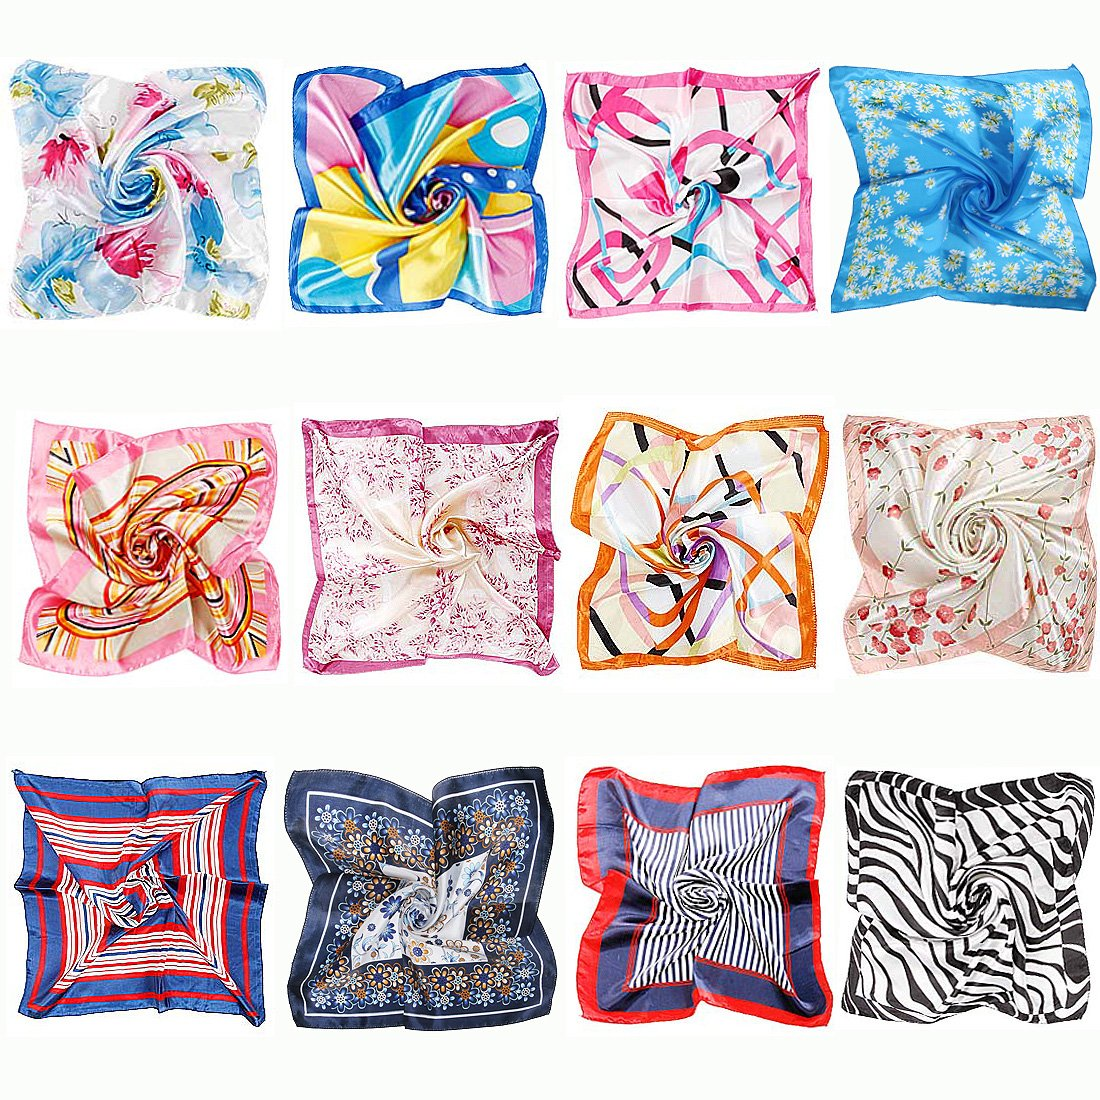 BMC 12pc Women's Silky Scarf Square Mixed Patterns & Colors Fashion Accessory Set - Floral Fun Pack